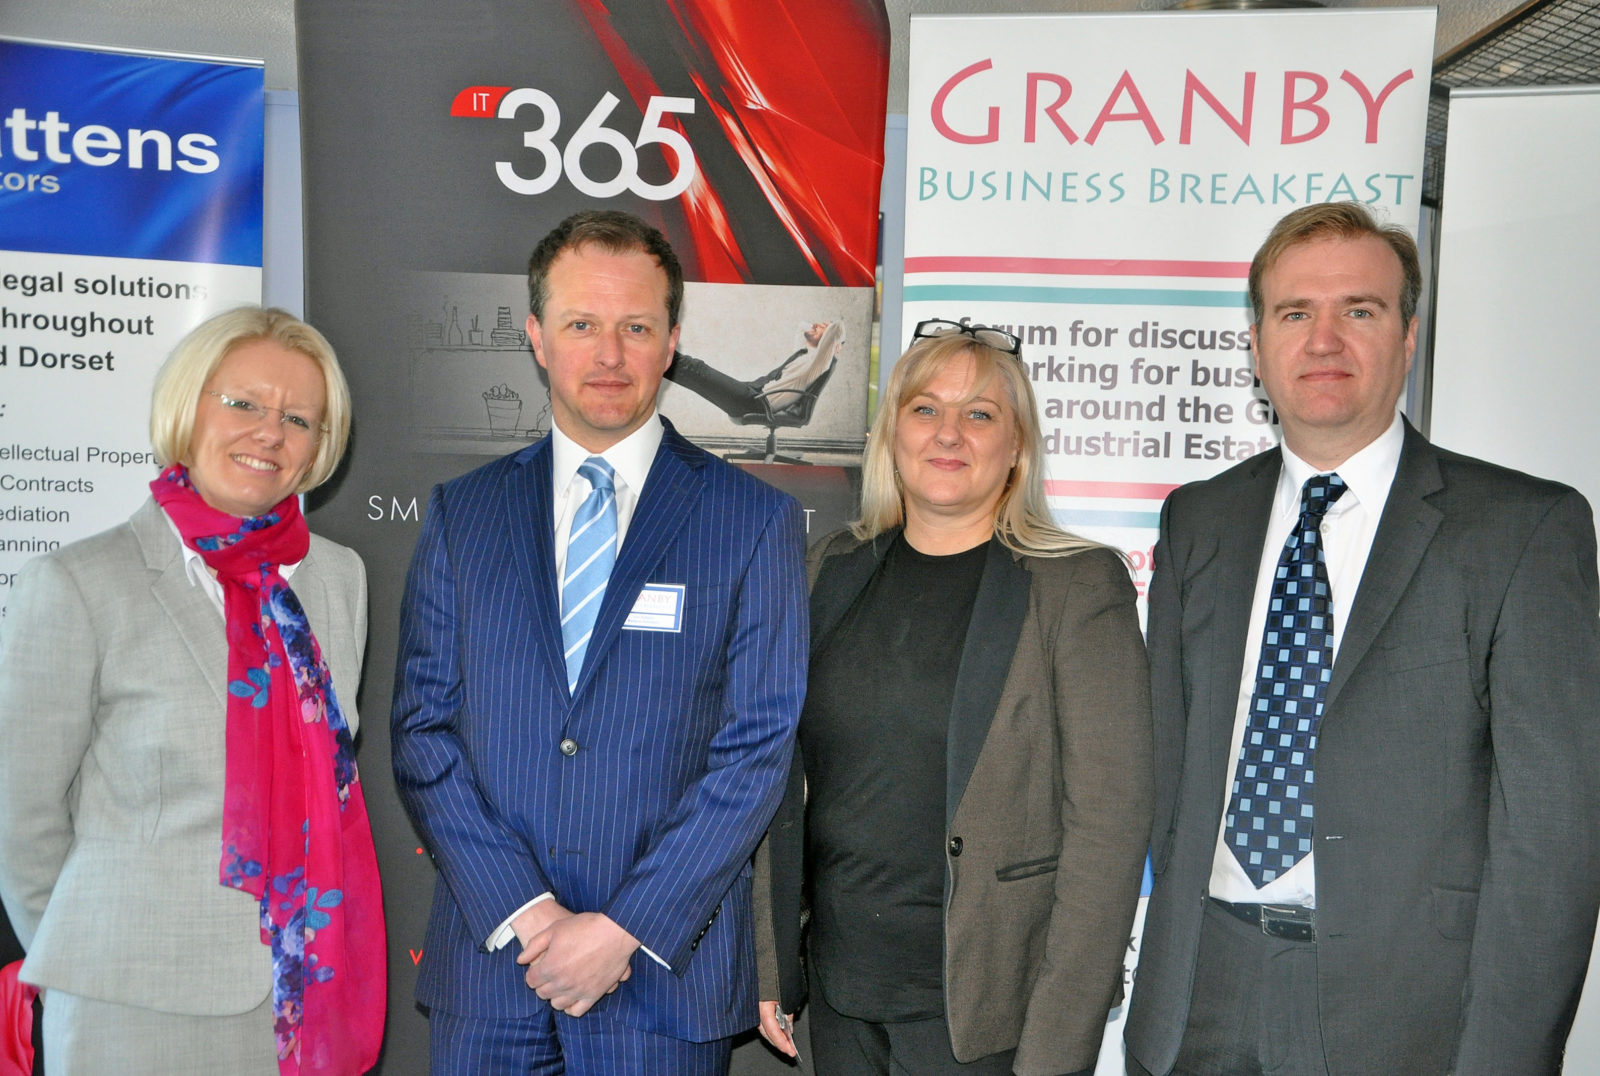 Speakers at the April Granby Business Breakfast organised by Battens Solicitors with Weymouth and Portland Chamber of Commerce. From left, Shelley Poole of Weymouth College, Jon Dobson of Battens Solicitors, Julia Cohen of Weymouth College and James Bull of IT Support 365.